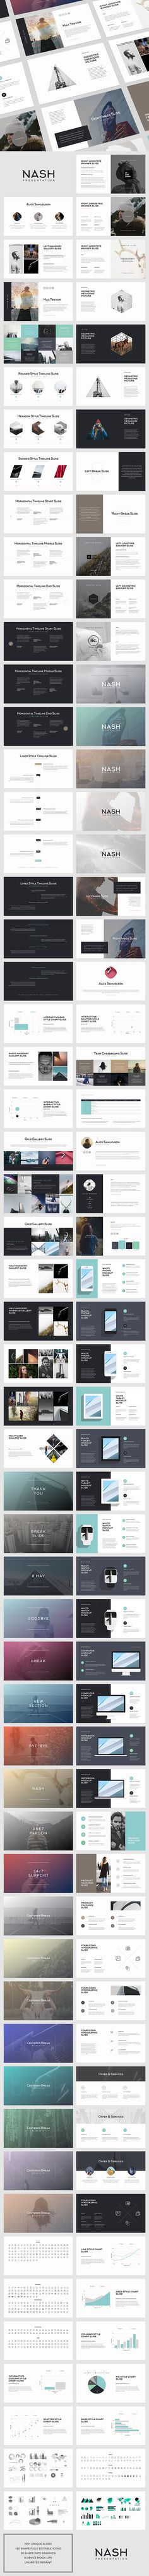 NASH on Behance